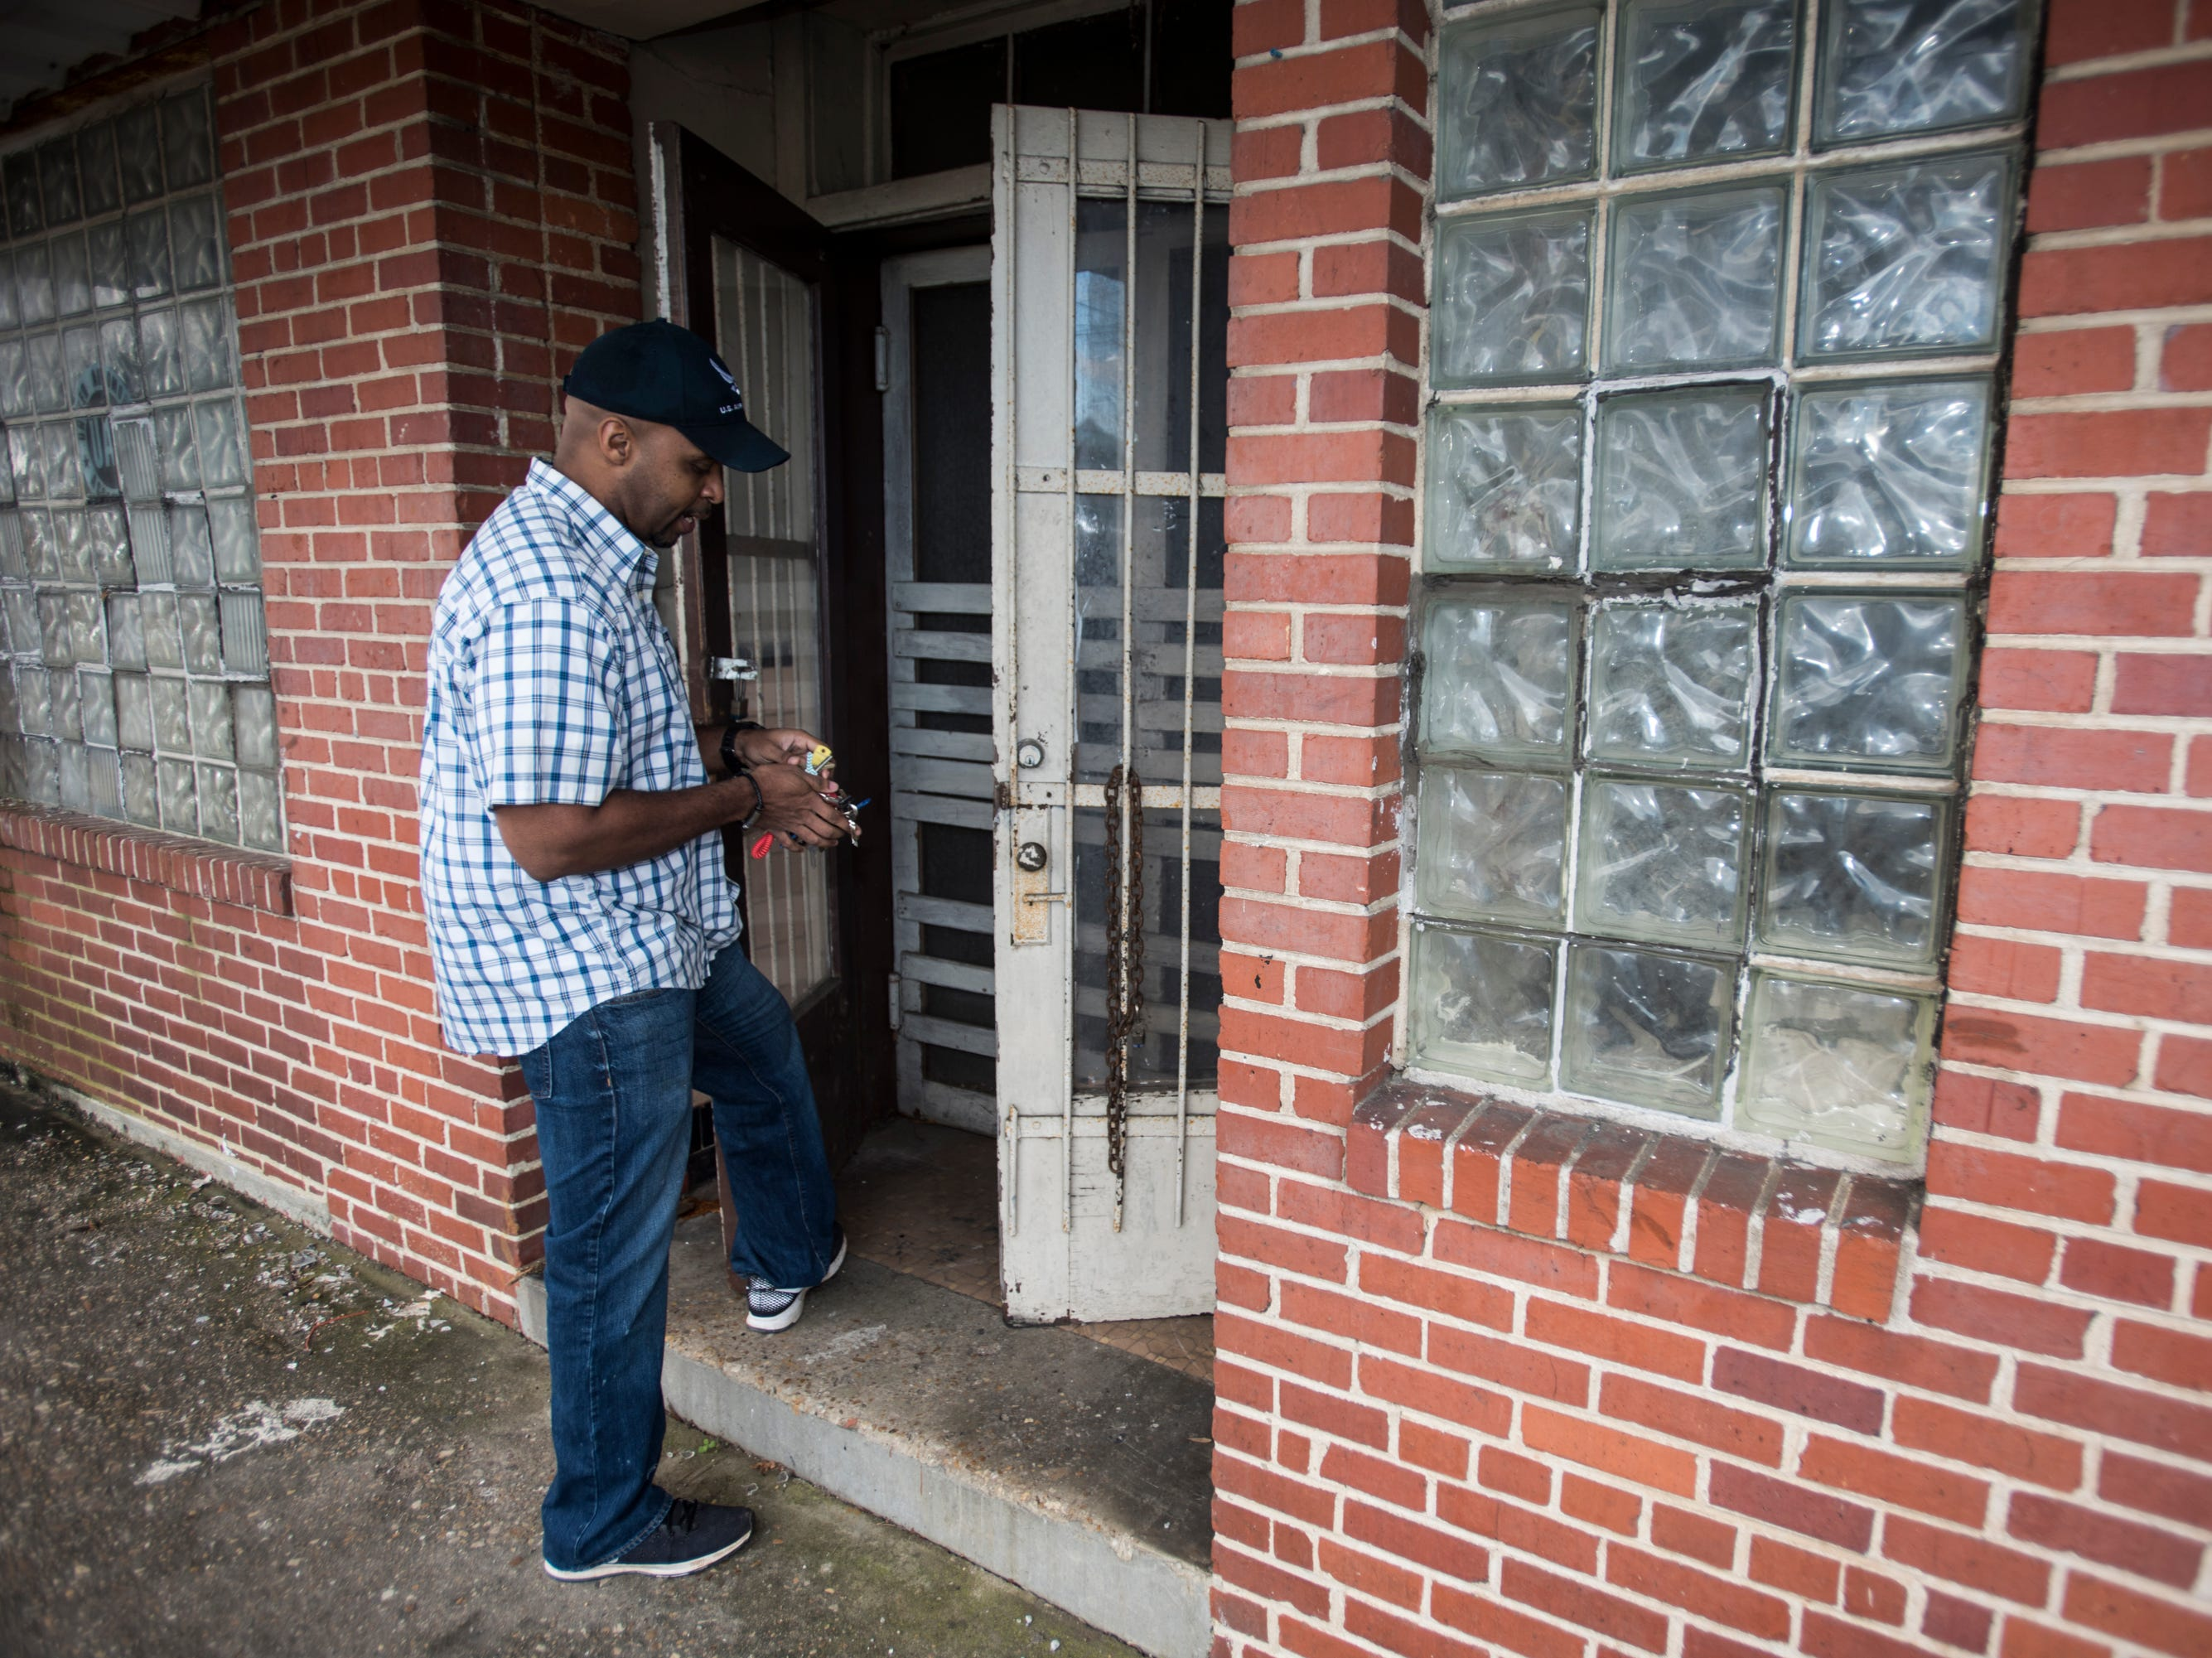 Owner Edward Davis locks up the doors at the Ben Moore Hotel in Montgomery, Ala., on Friday, Jan. 4, 2019.